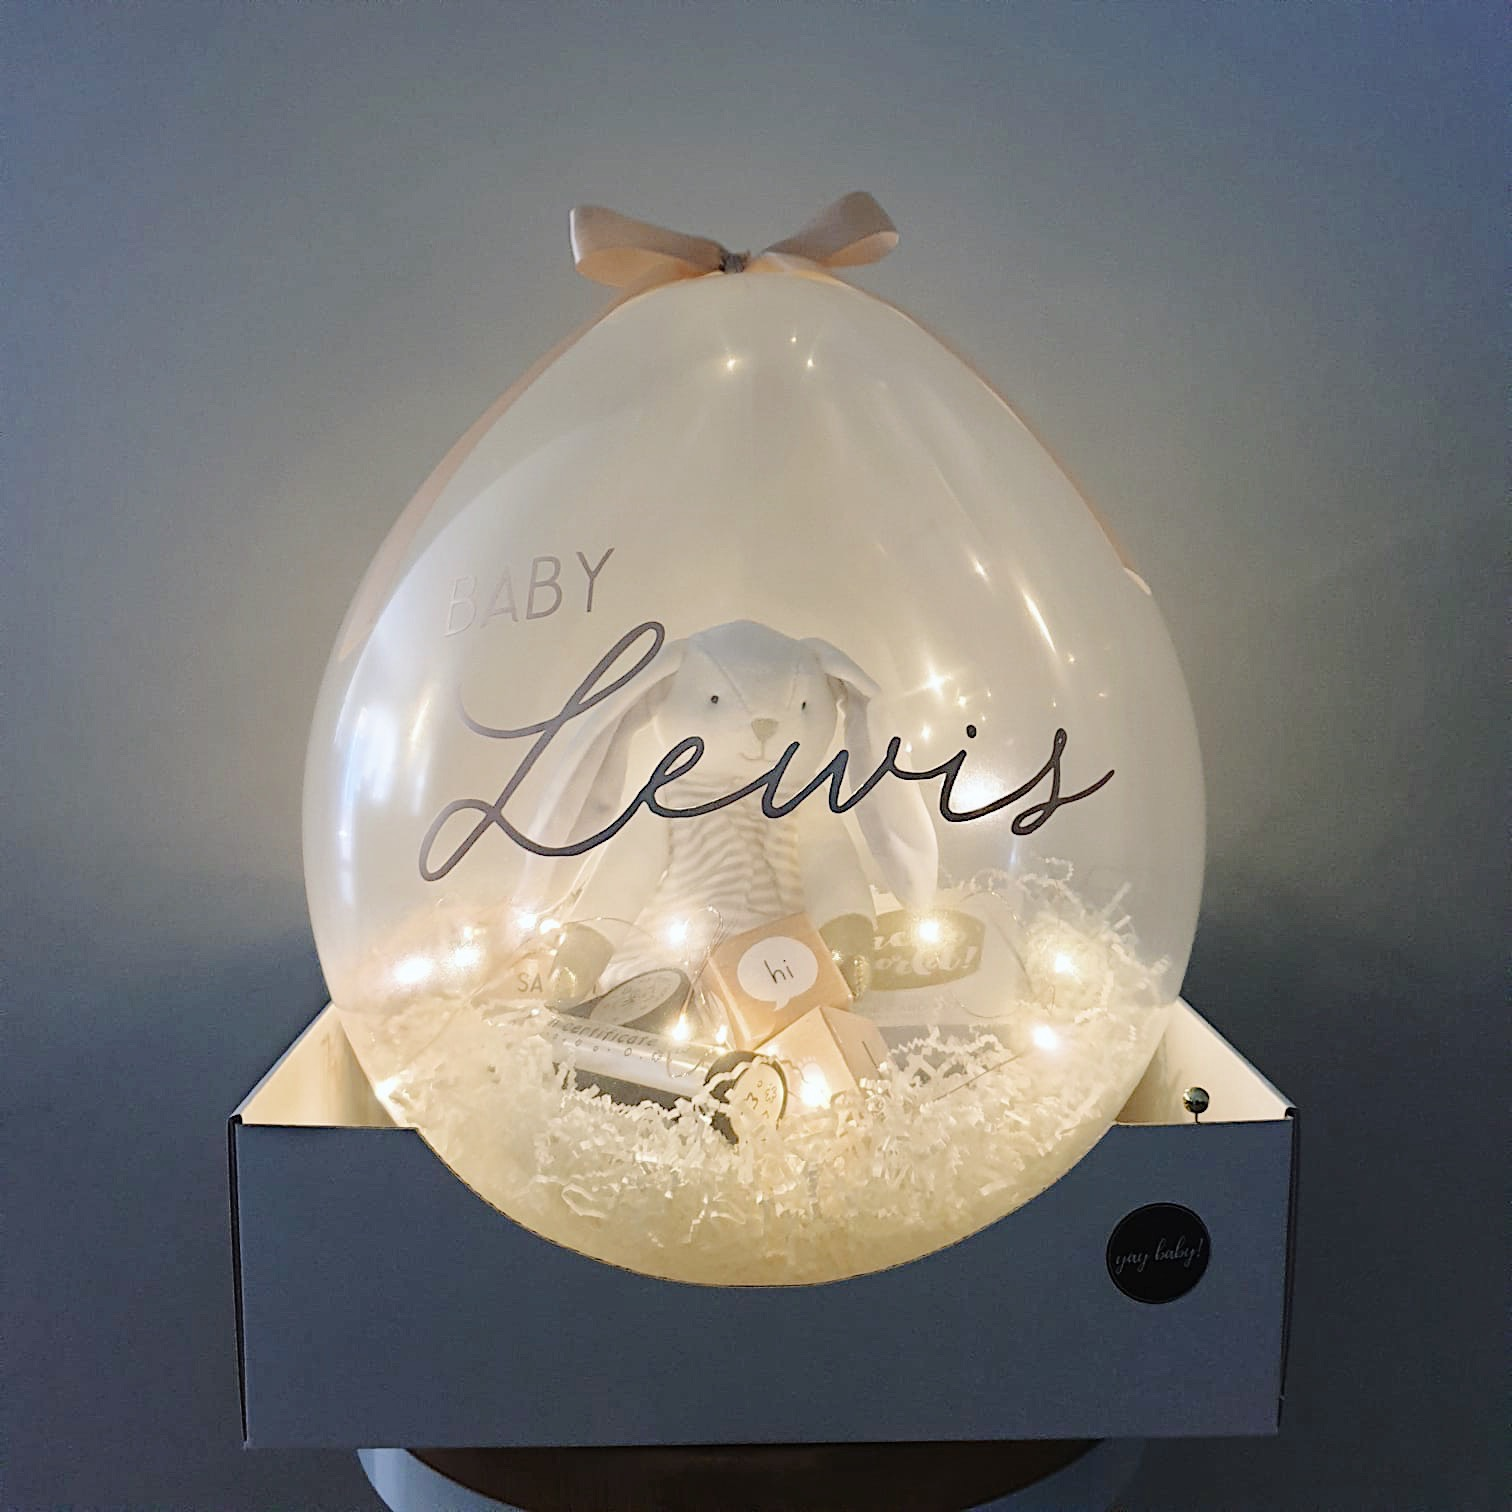 Create Your Own Luxe Gift Balloon